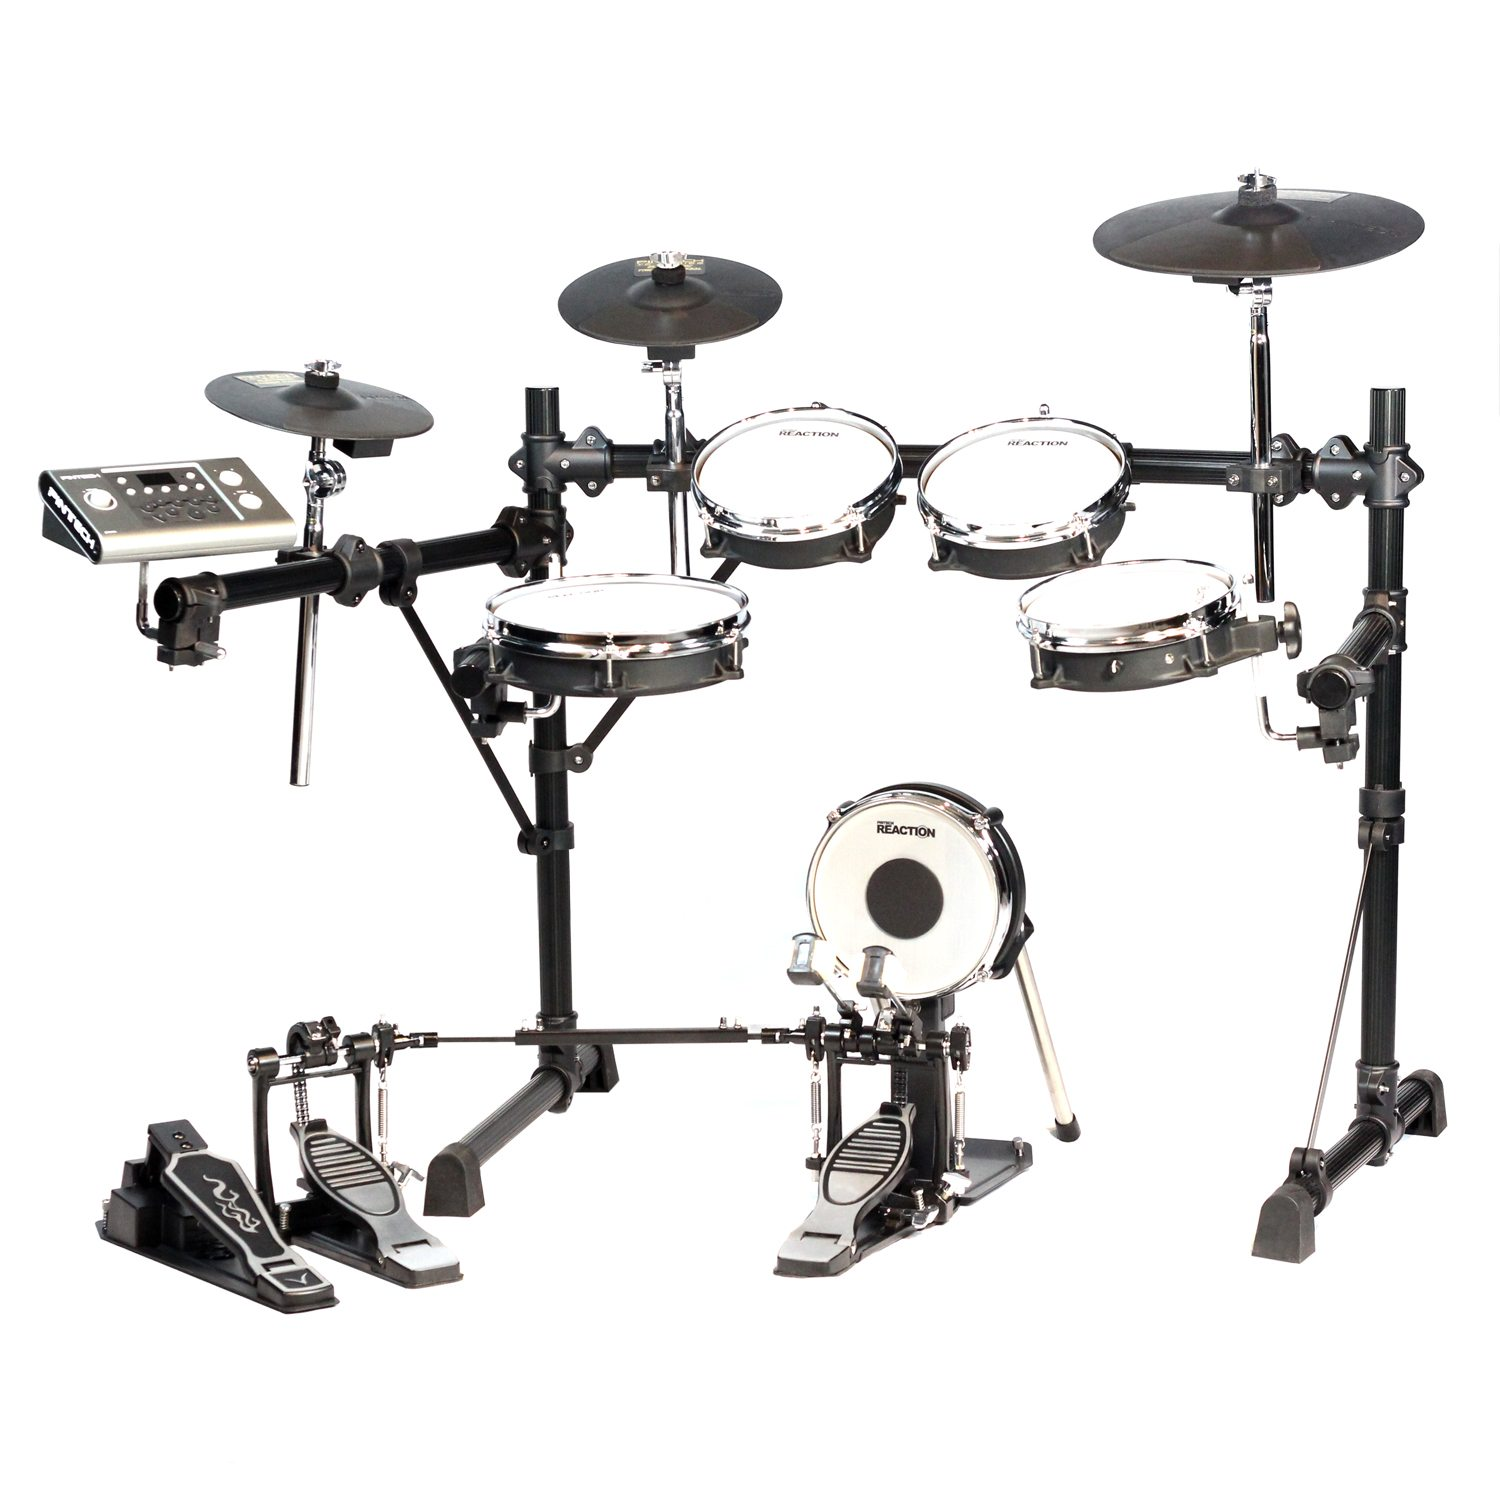 pintech pdk1000 electronic drum kit pintech percussion. Black Bedroom Furniture Sets. Home Design Ideas